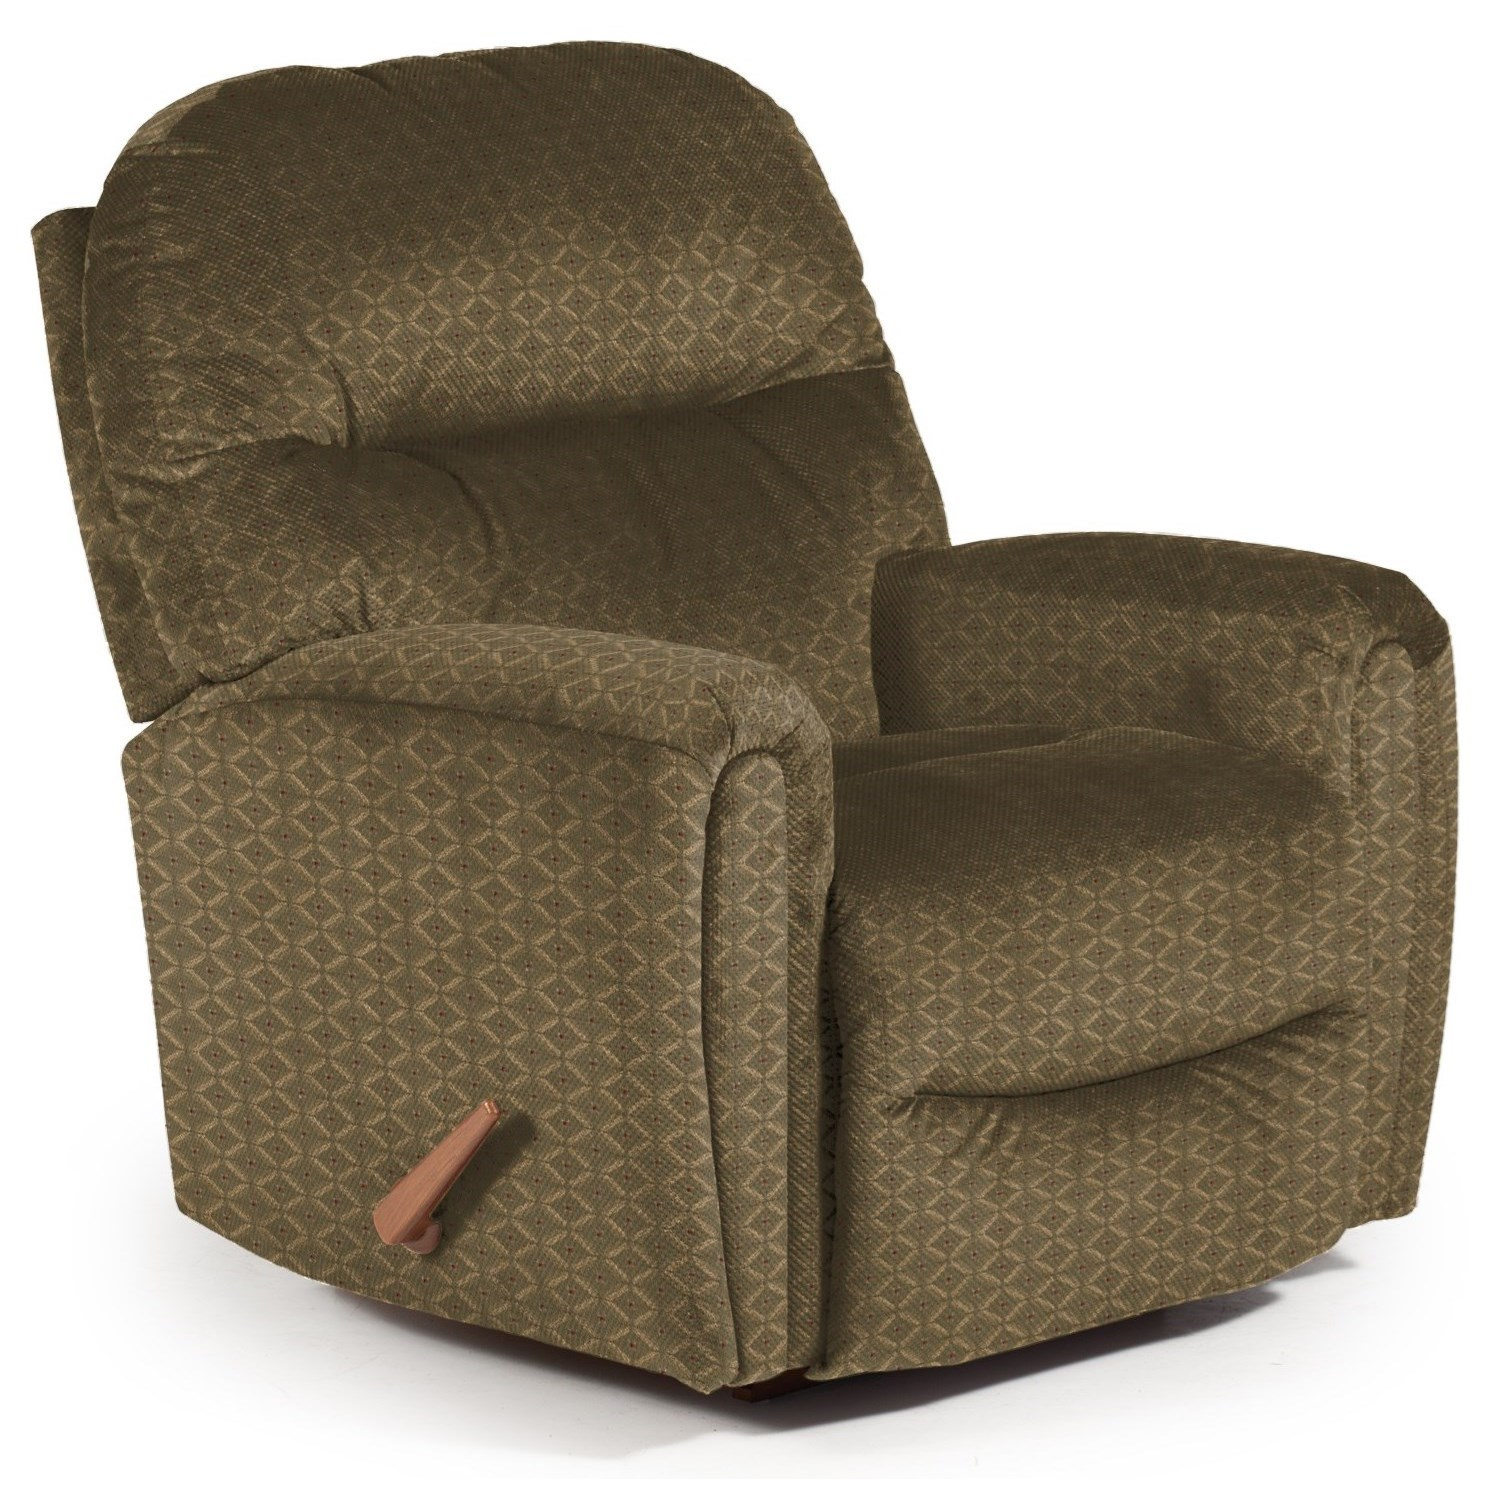 Best Home Furnishings Recliners - Medium Markson Space Saver Recliner - Item Number: 110599587-18021